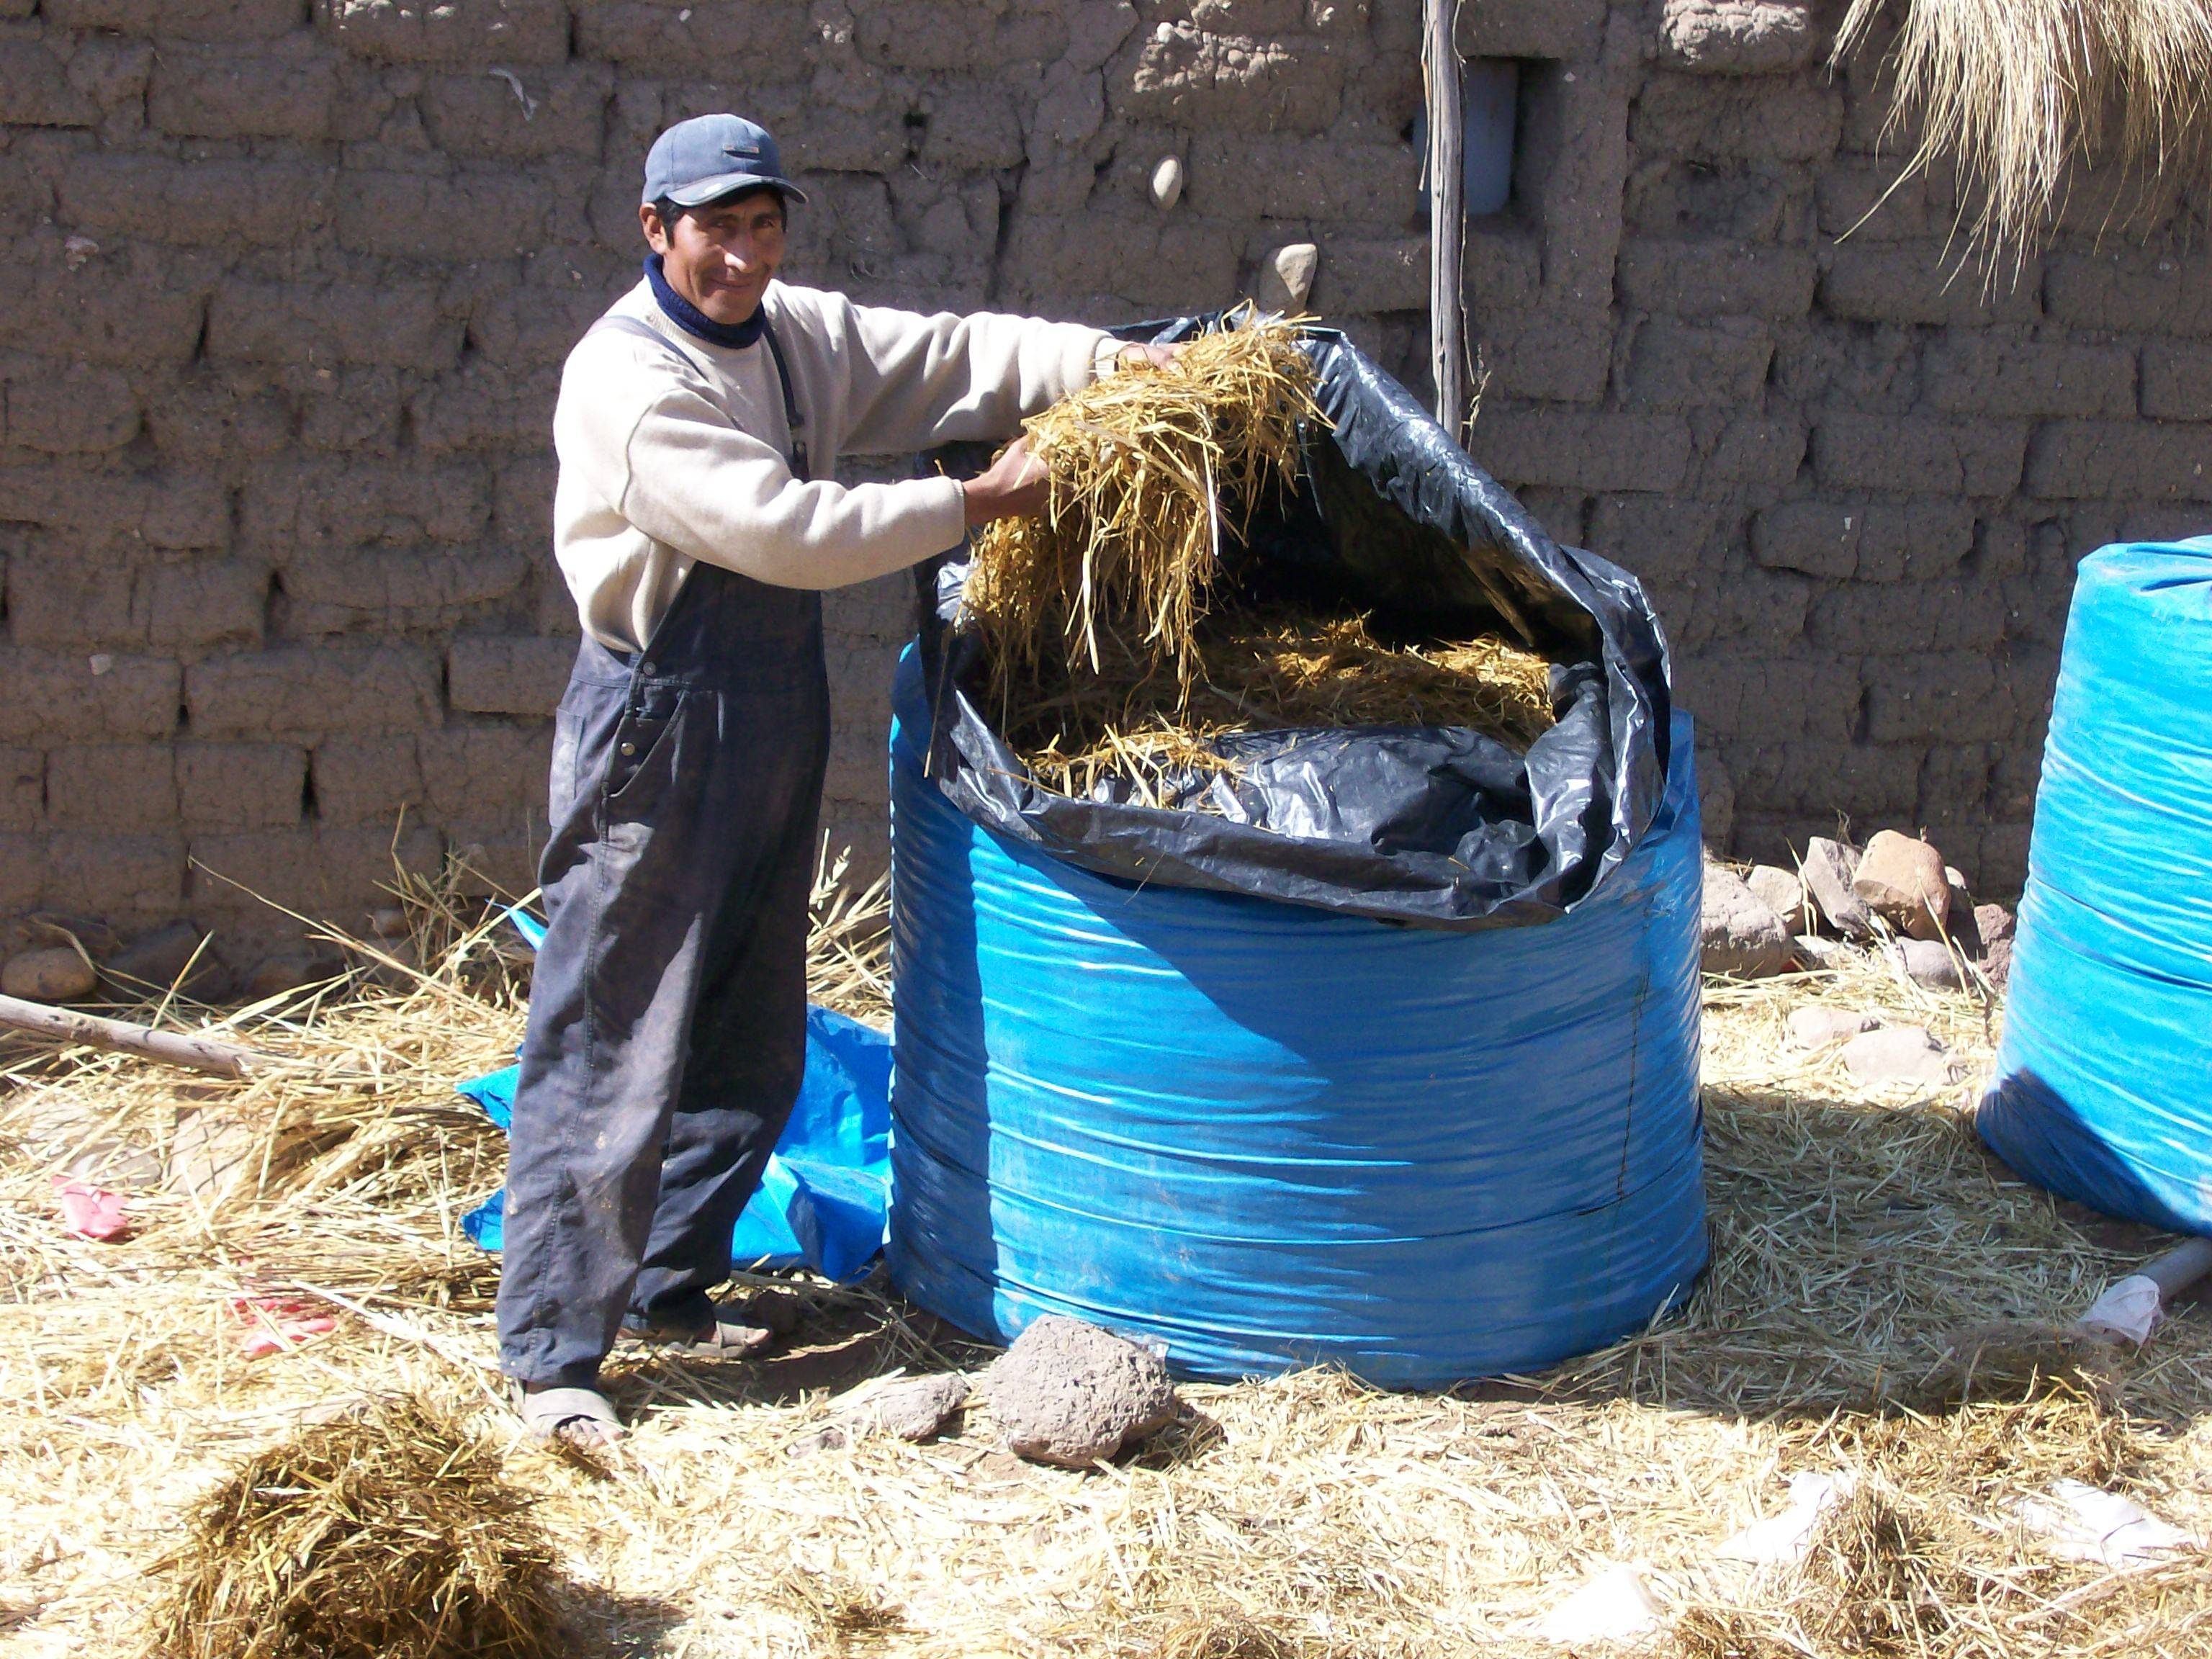 Technological alternative for conservation of forage as silage in an artisanal way